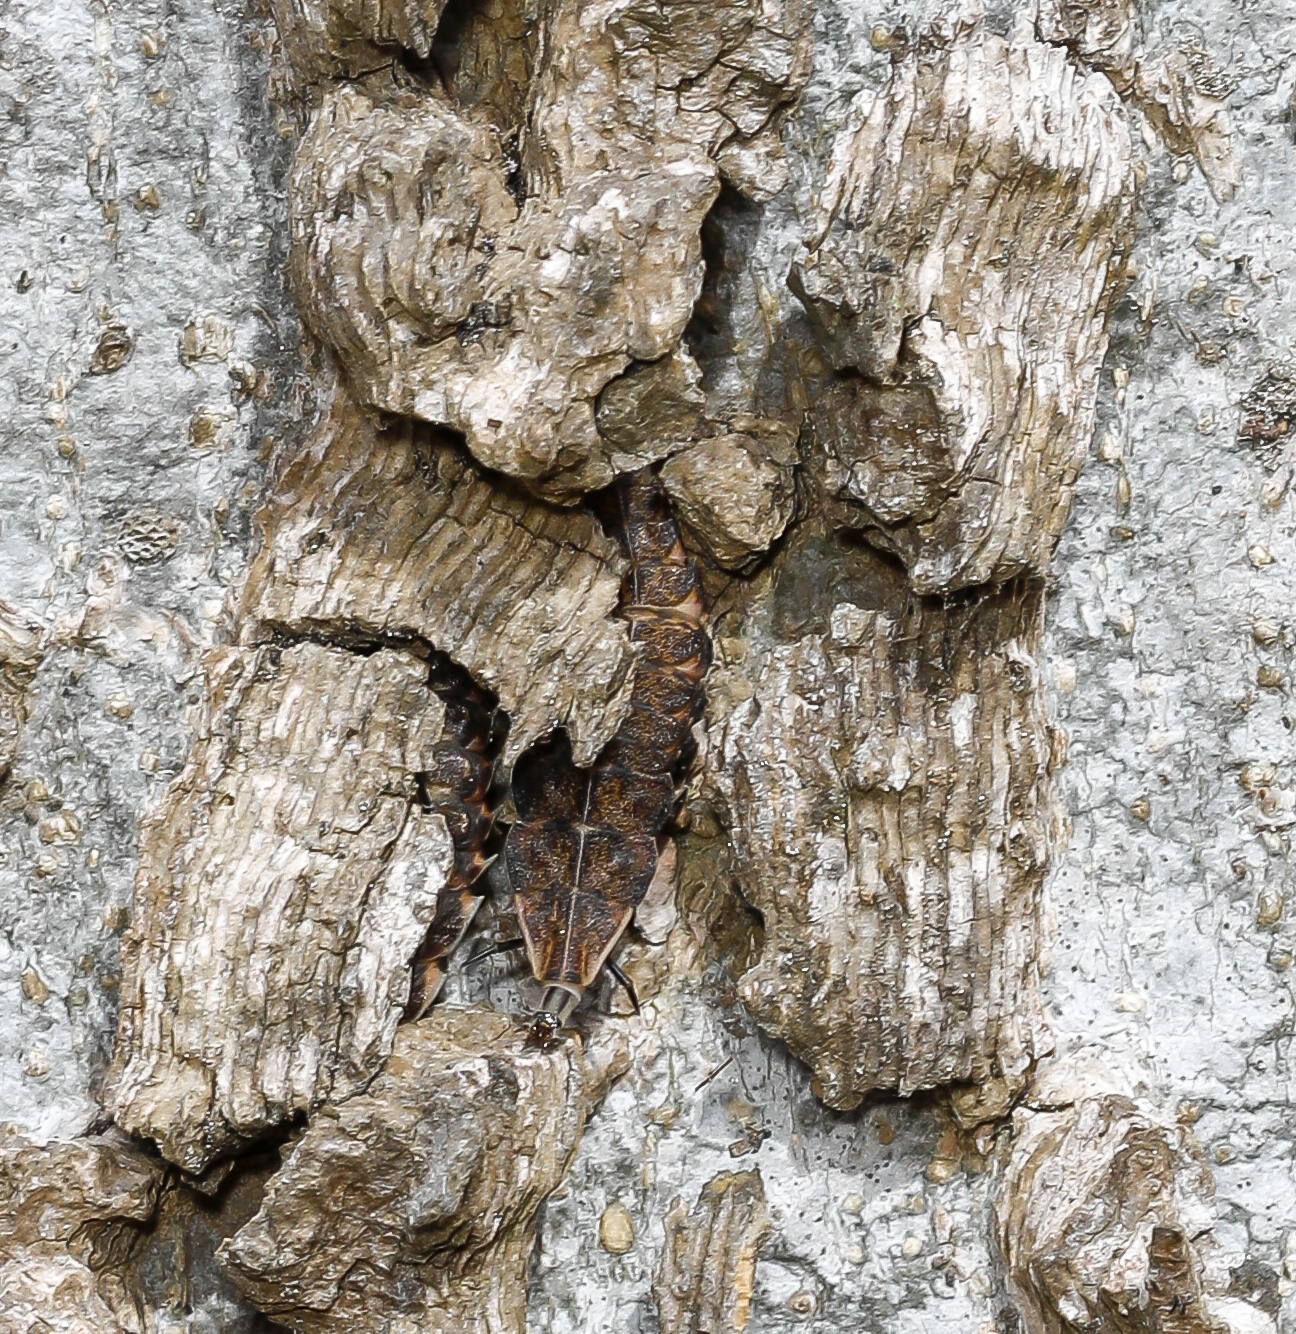 insects hiding in Celtis bark